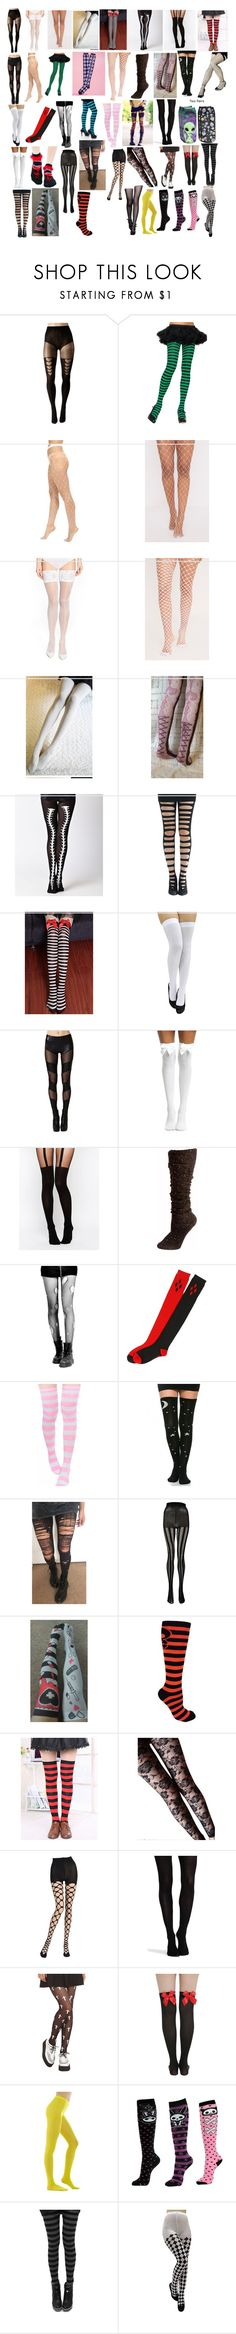 """Tights 4"" by spellcasters ❤ liked on Polyvore featuring Pretty Polly, Leg Avenue, Wolford, Kally Kay, Hot Topic, ASOS, Boohoo, Emilio Cavallini, SPANX and Andrew Gn"